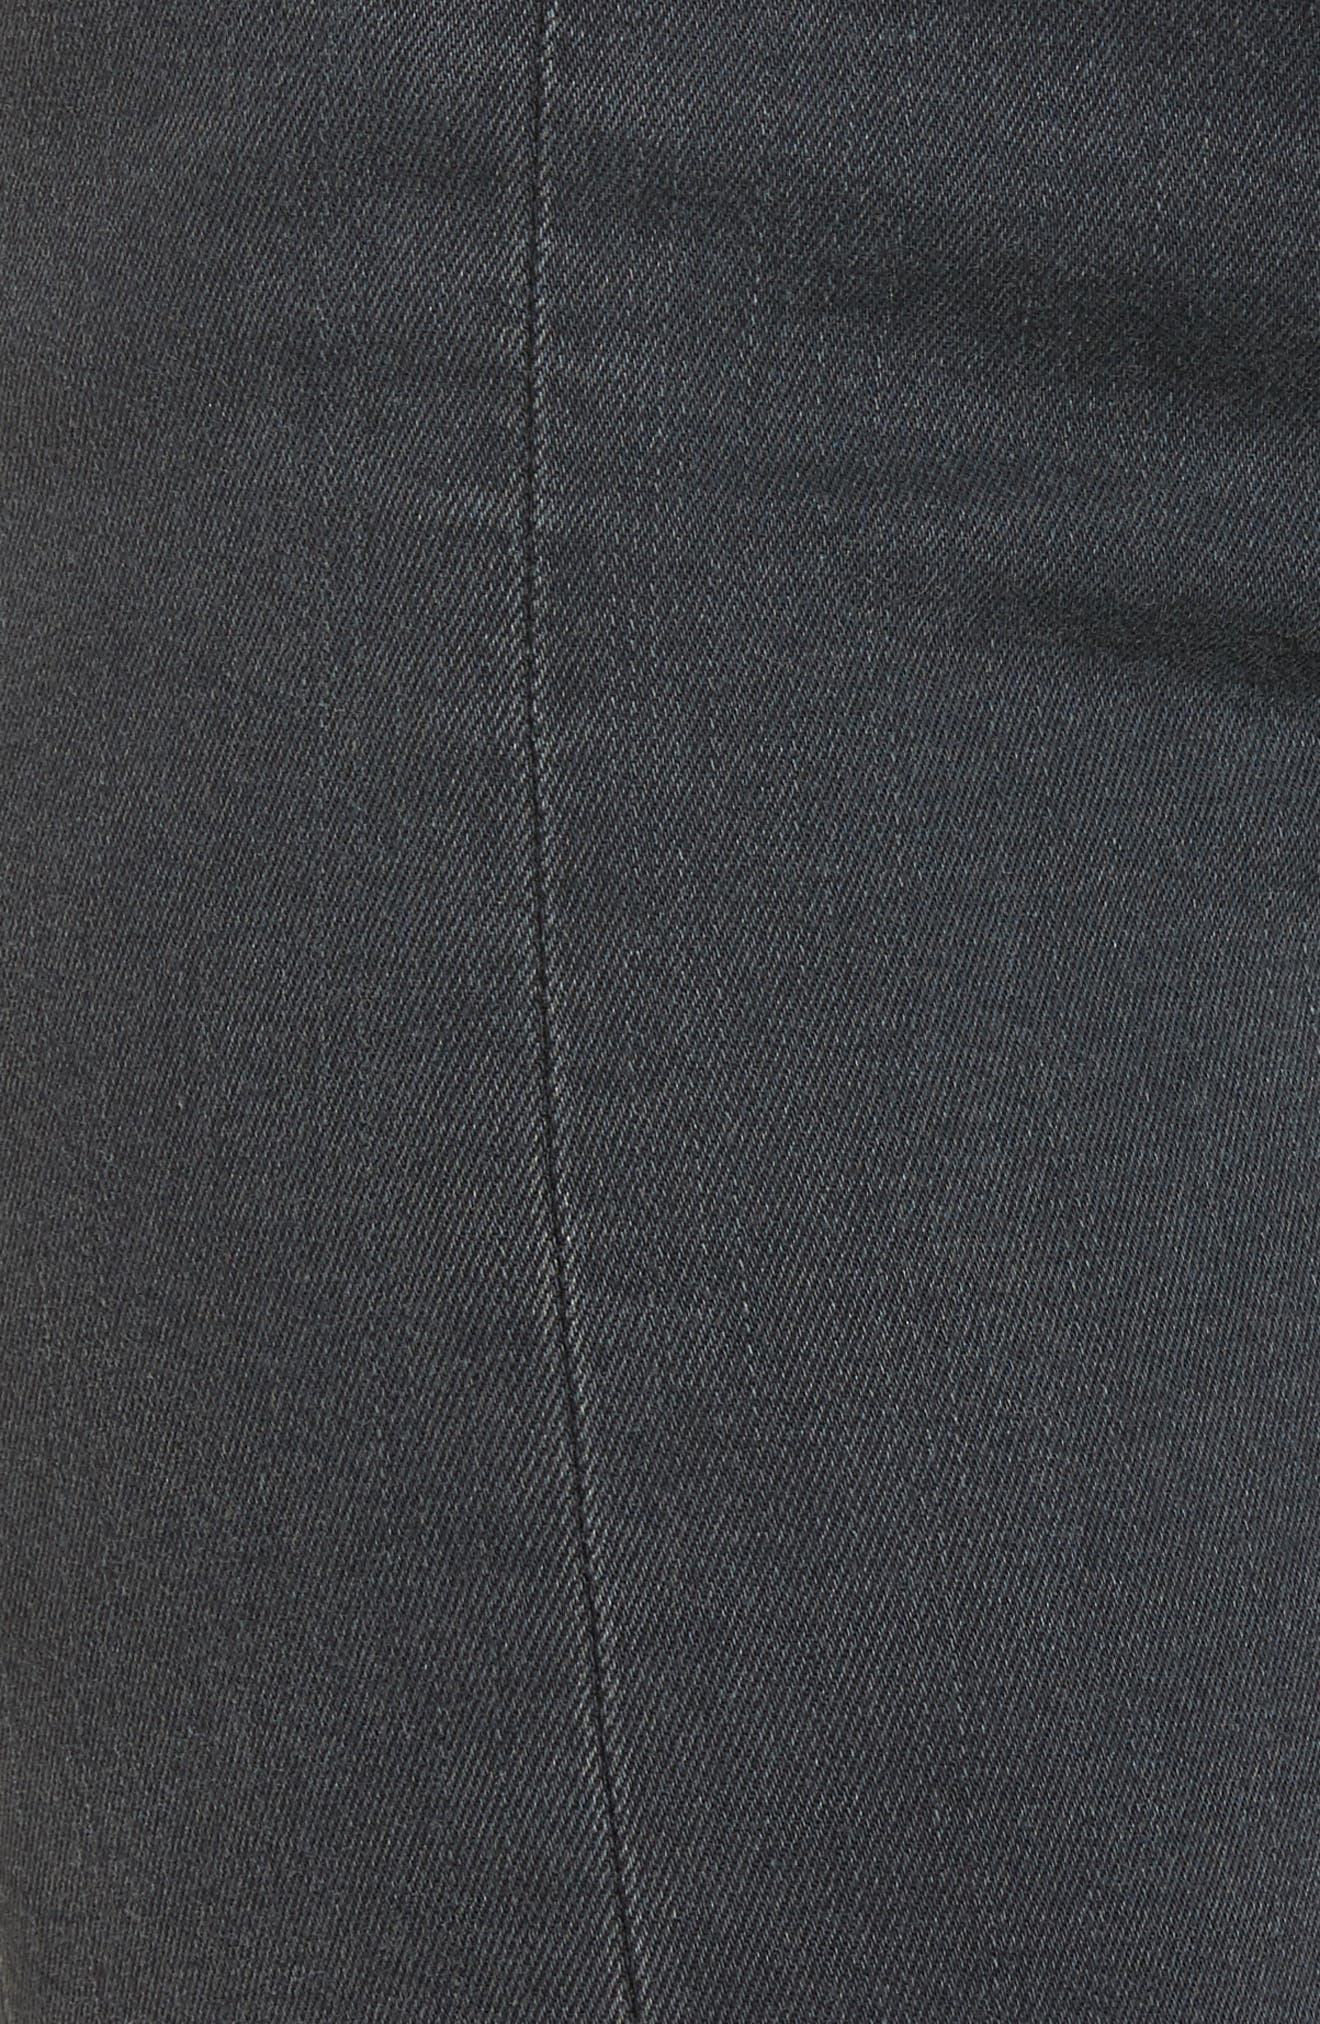 Jagger Front Seam Skinny Jeans,                             Alternate thumbnail 5, color,                             006